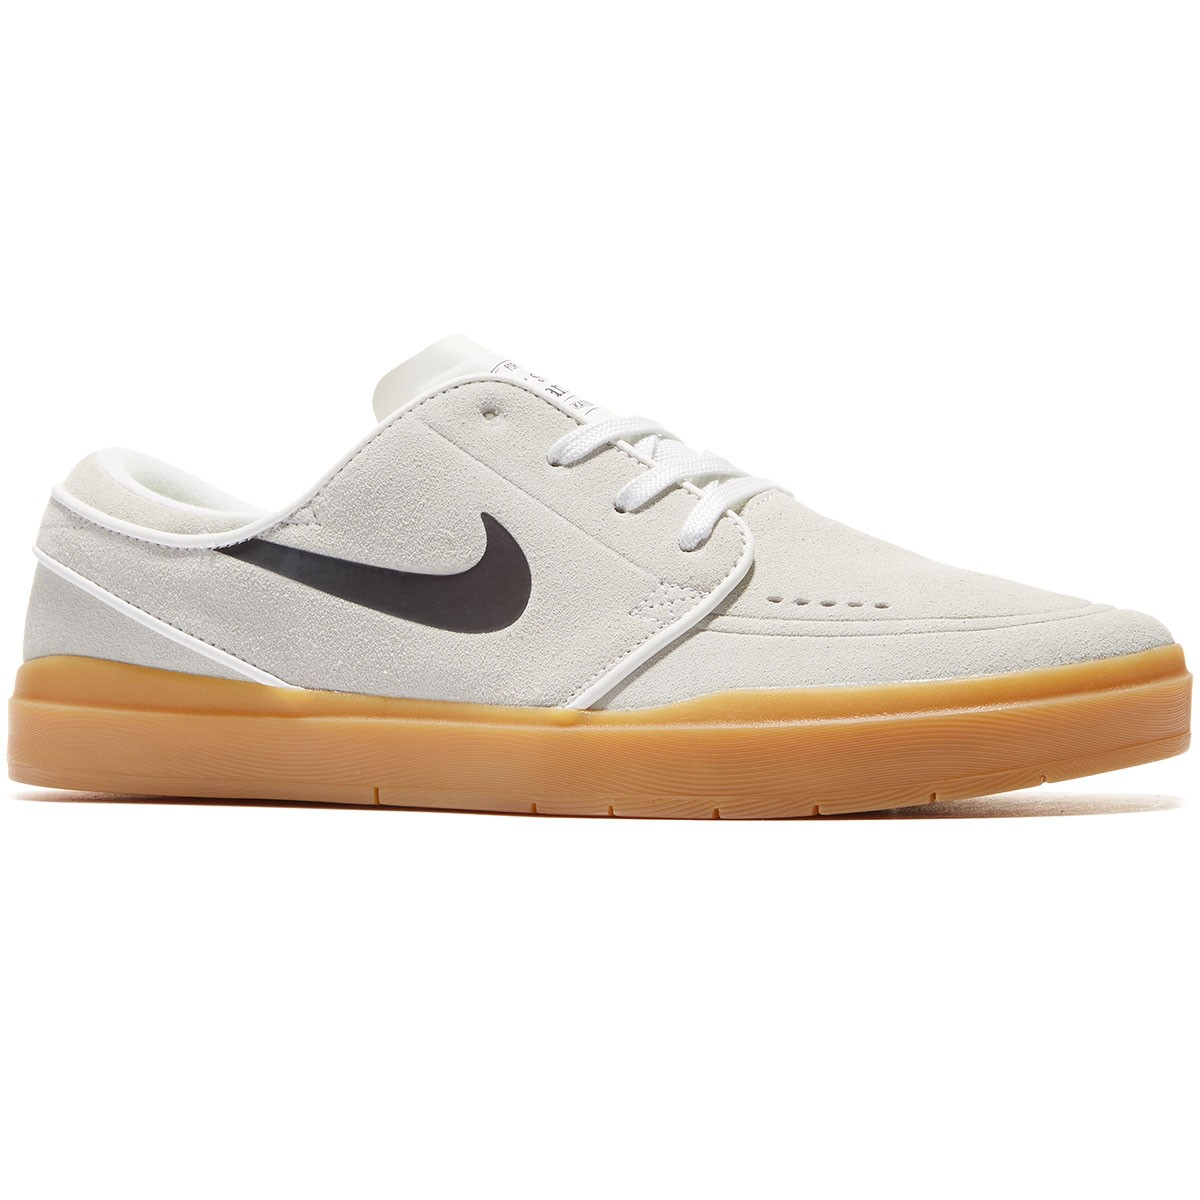 41498cd67091 ... Nike SB Stefan Janoski Hyperfeel Shoes ...